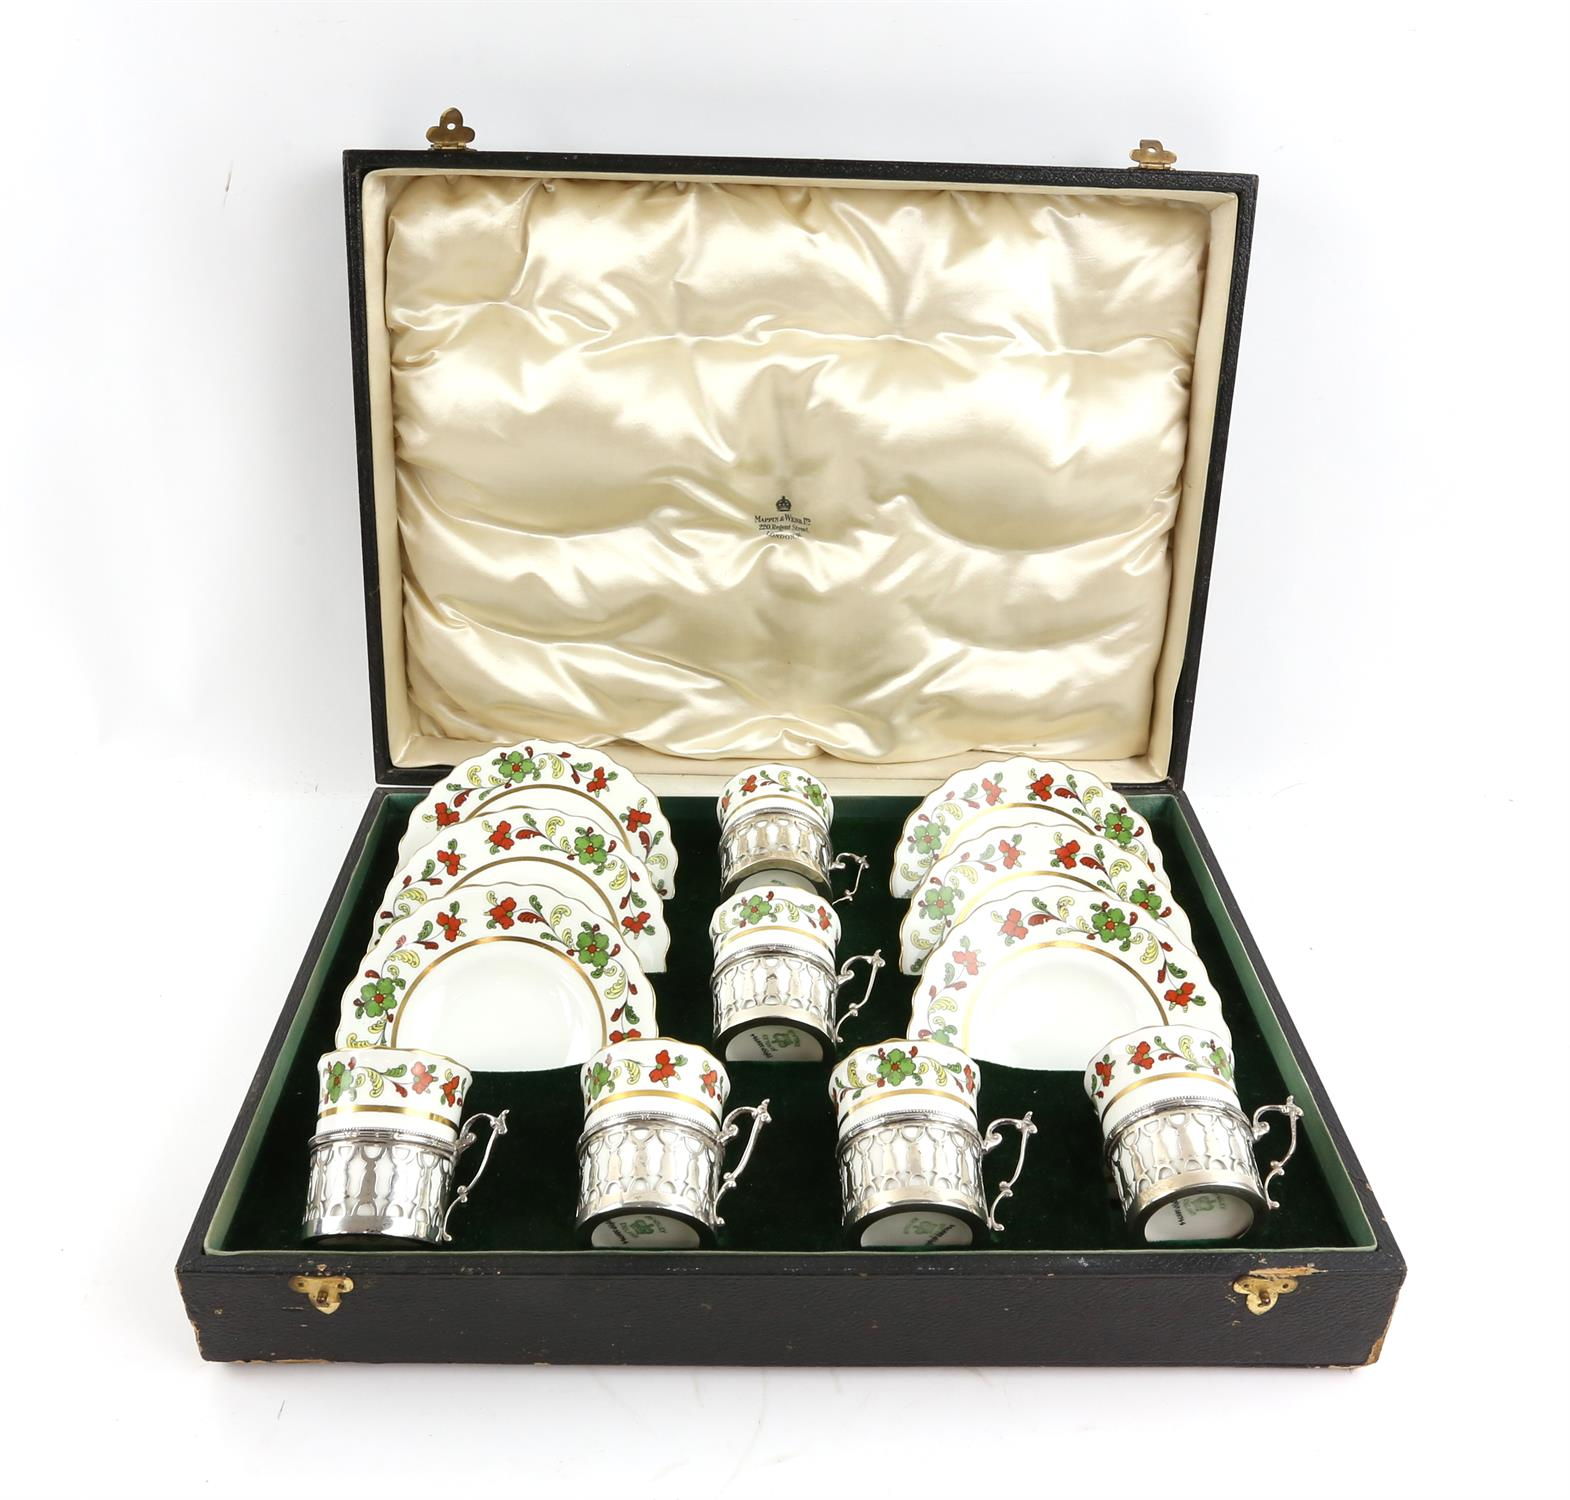 George V Aynsley coffee set with six coffee cups in silver holders, London 1912, and saucers, - Image 7 of 7